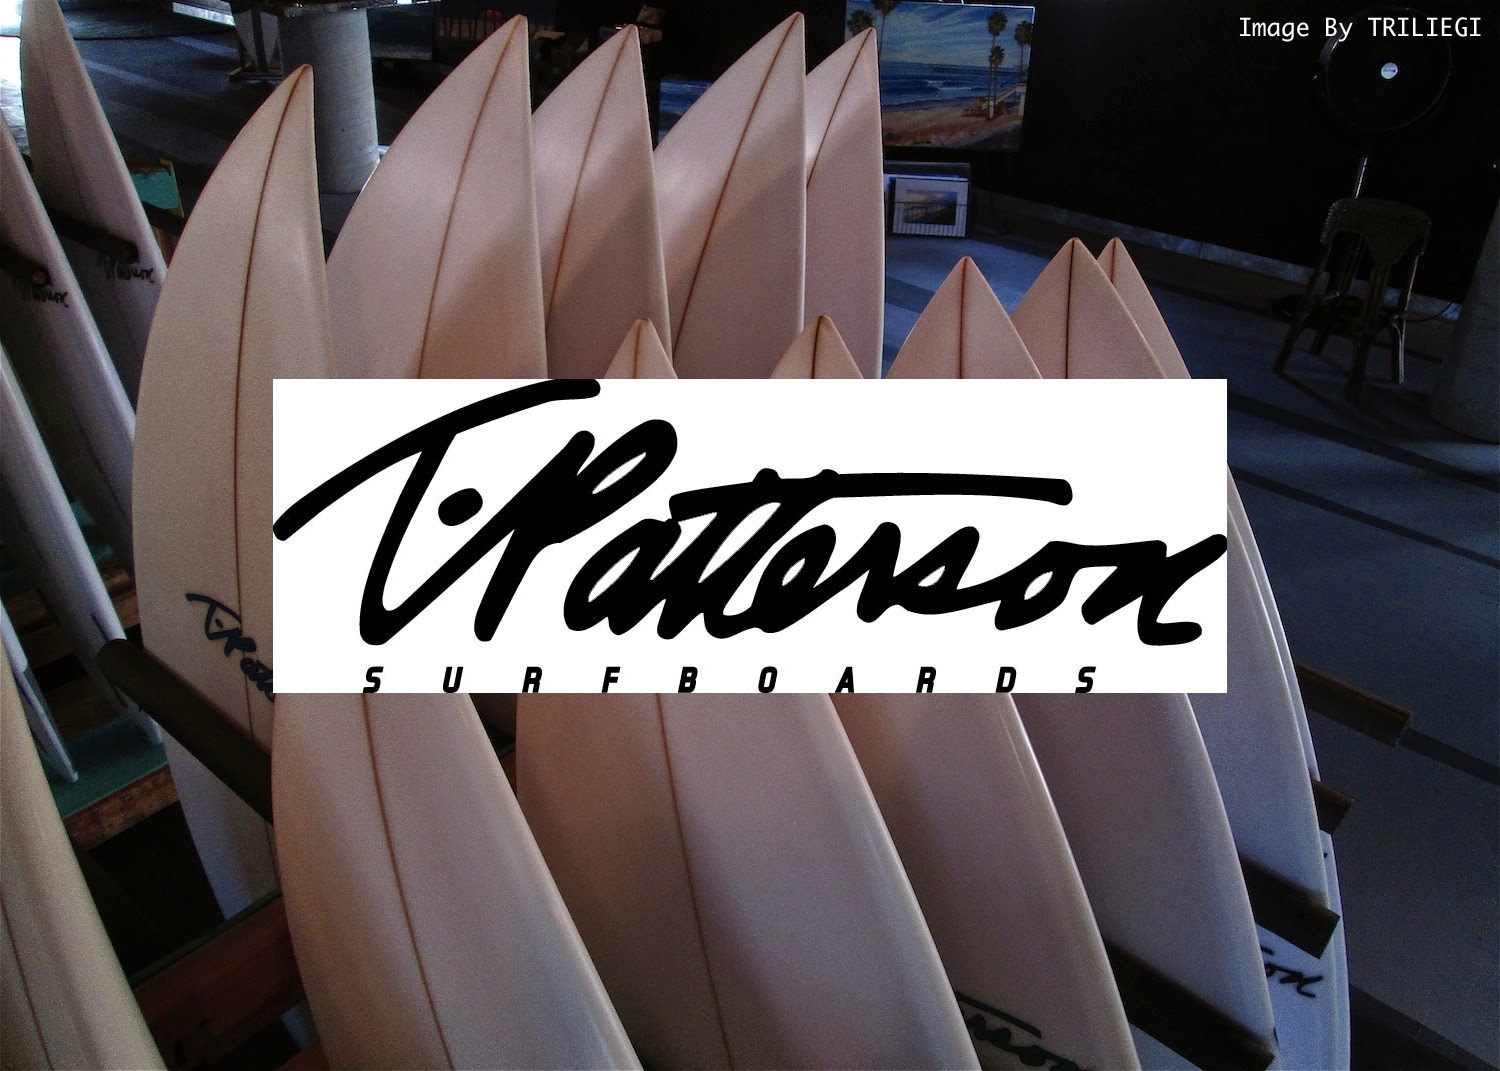 T.PATTERSON SURFBOARDS